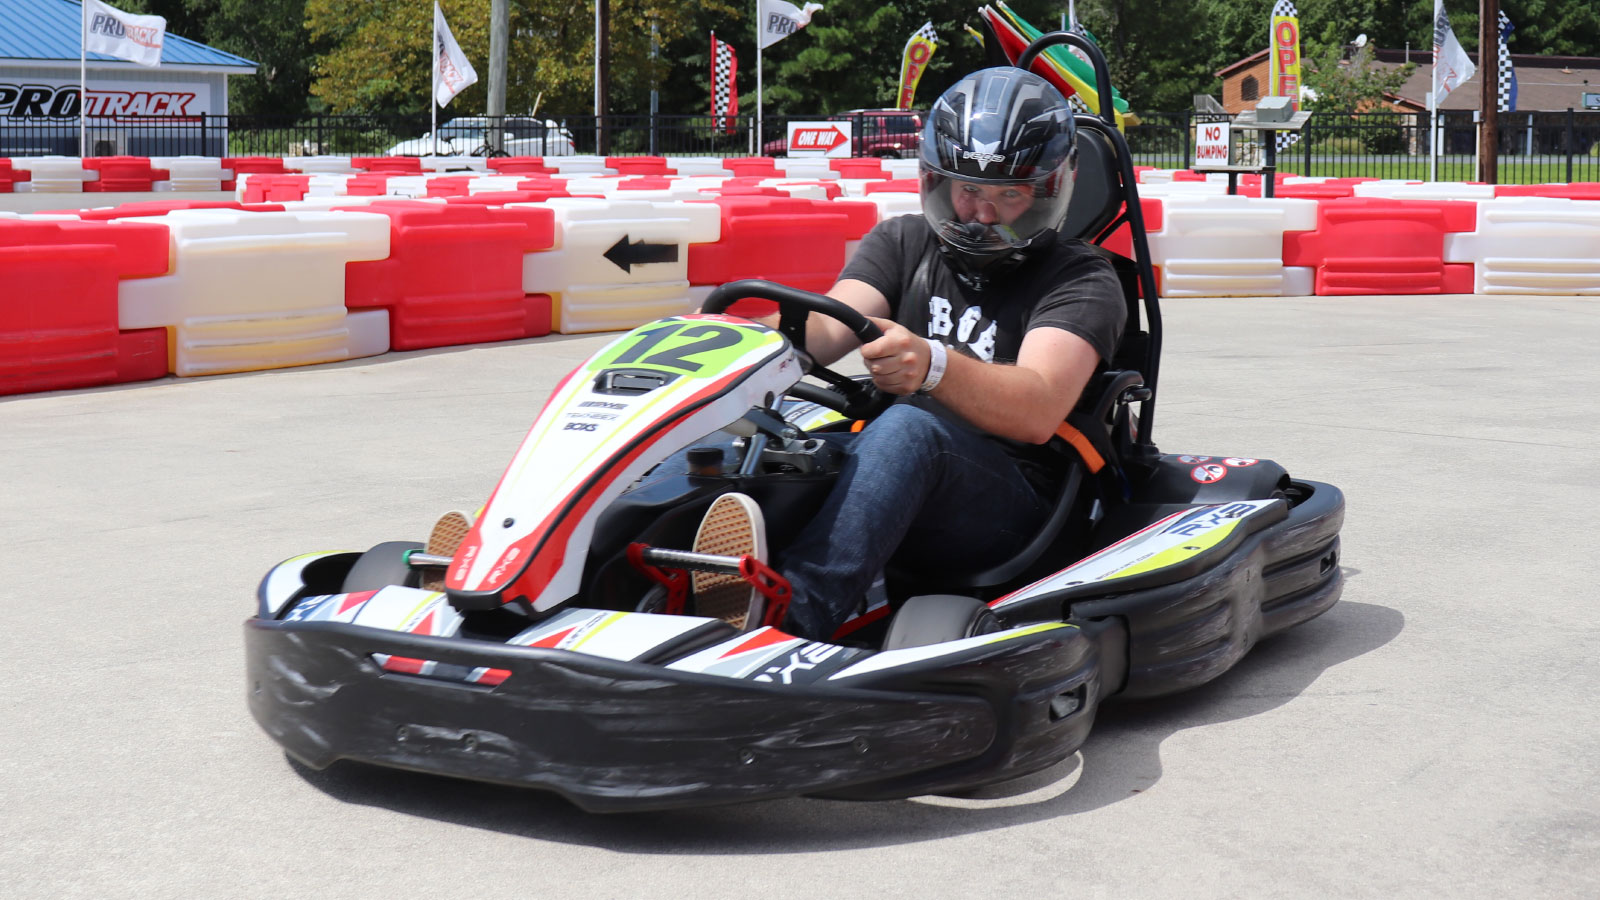 Pro Track Go-Kart Racing in Ocean City Maryland